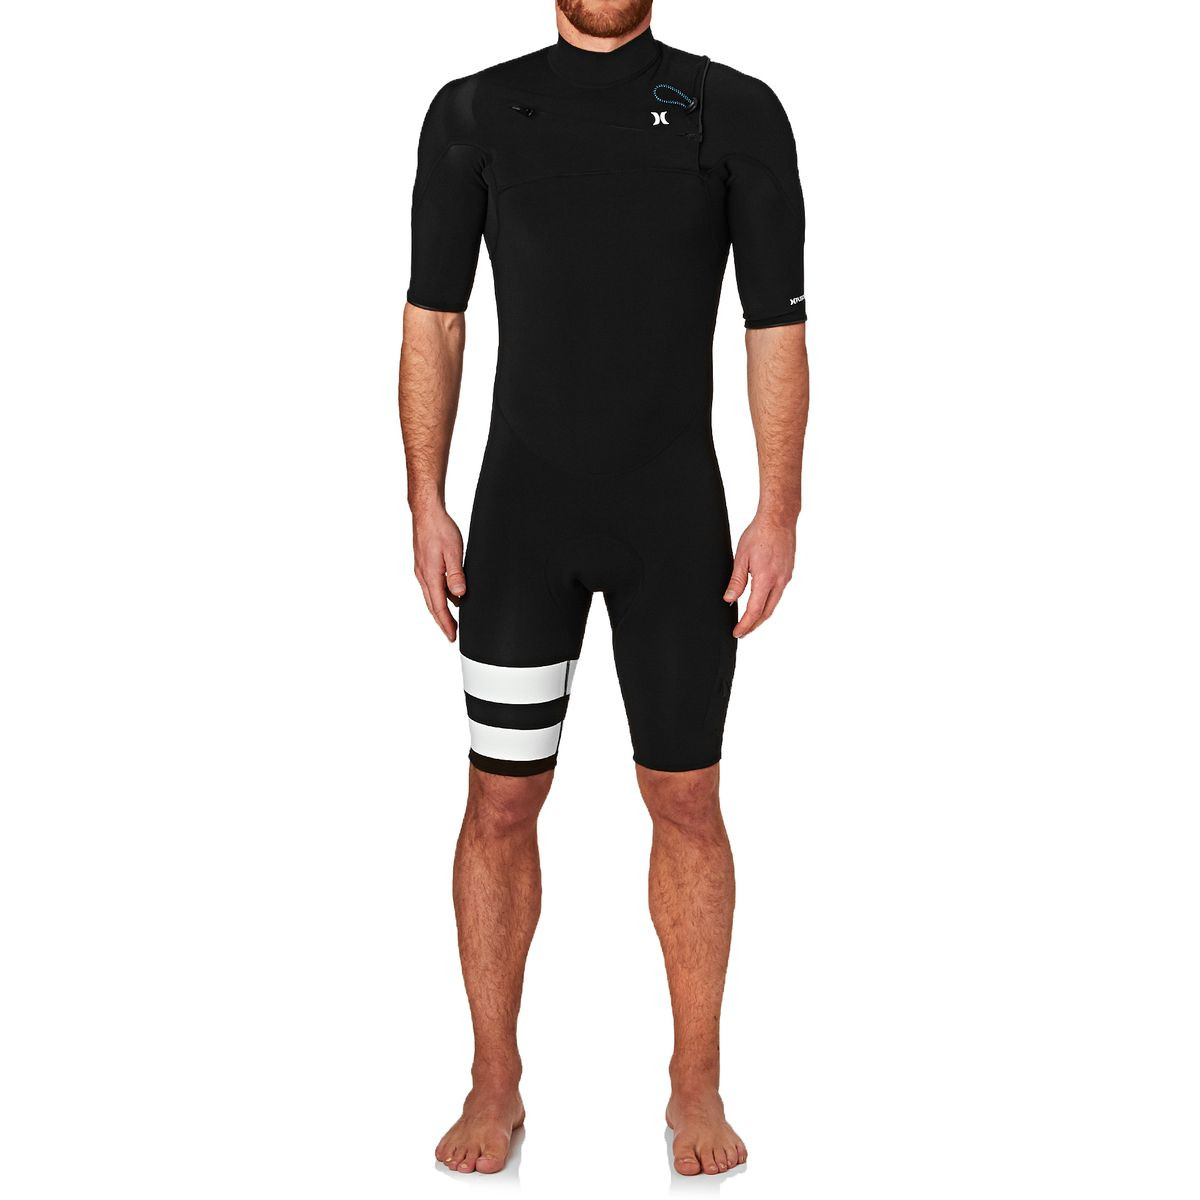 Hurley Fusion 2mm 2017 Chest Zip Short Sleeve Shorty Wetsuit - Black